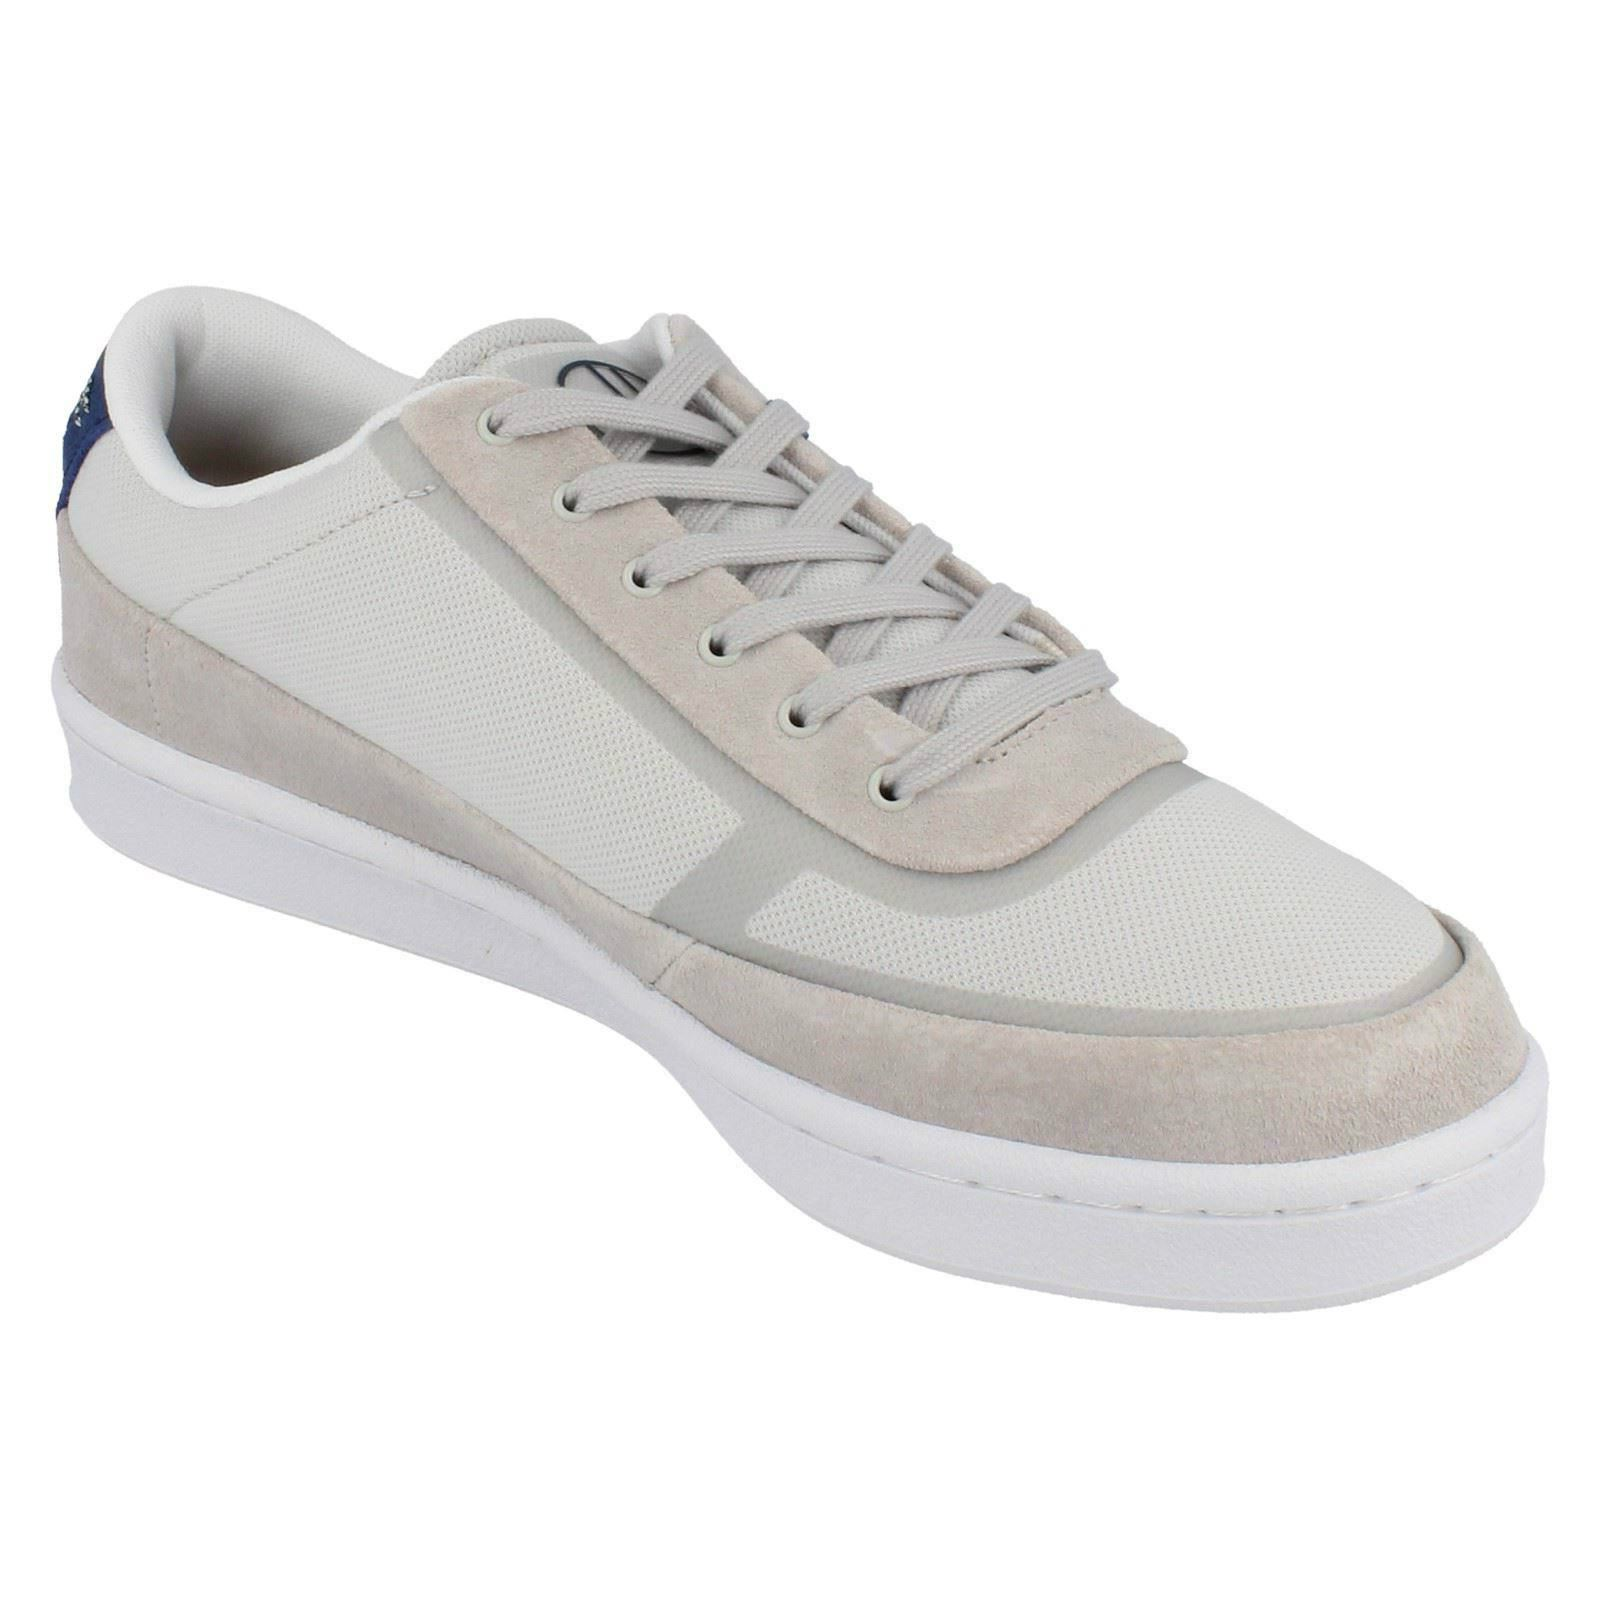 1fd0afb59 Mens-Lacoste-Trainers-Court-Line-NWP-SPM thumbnail 17